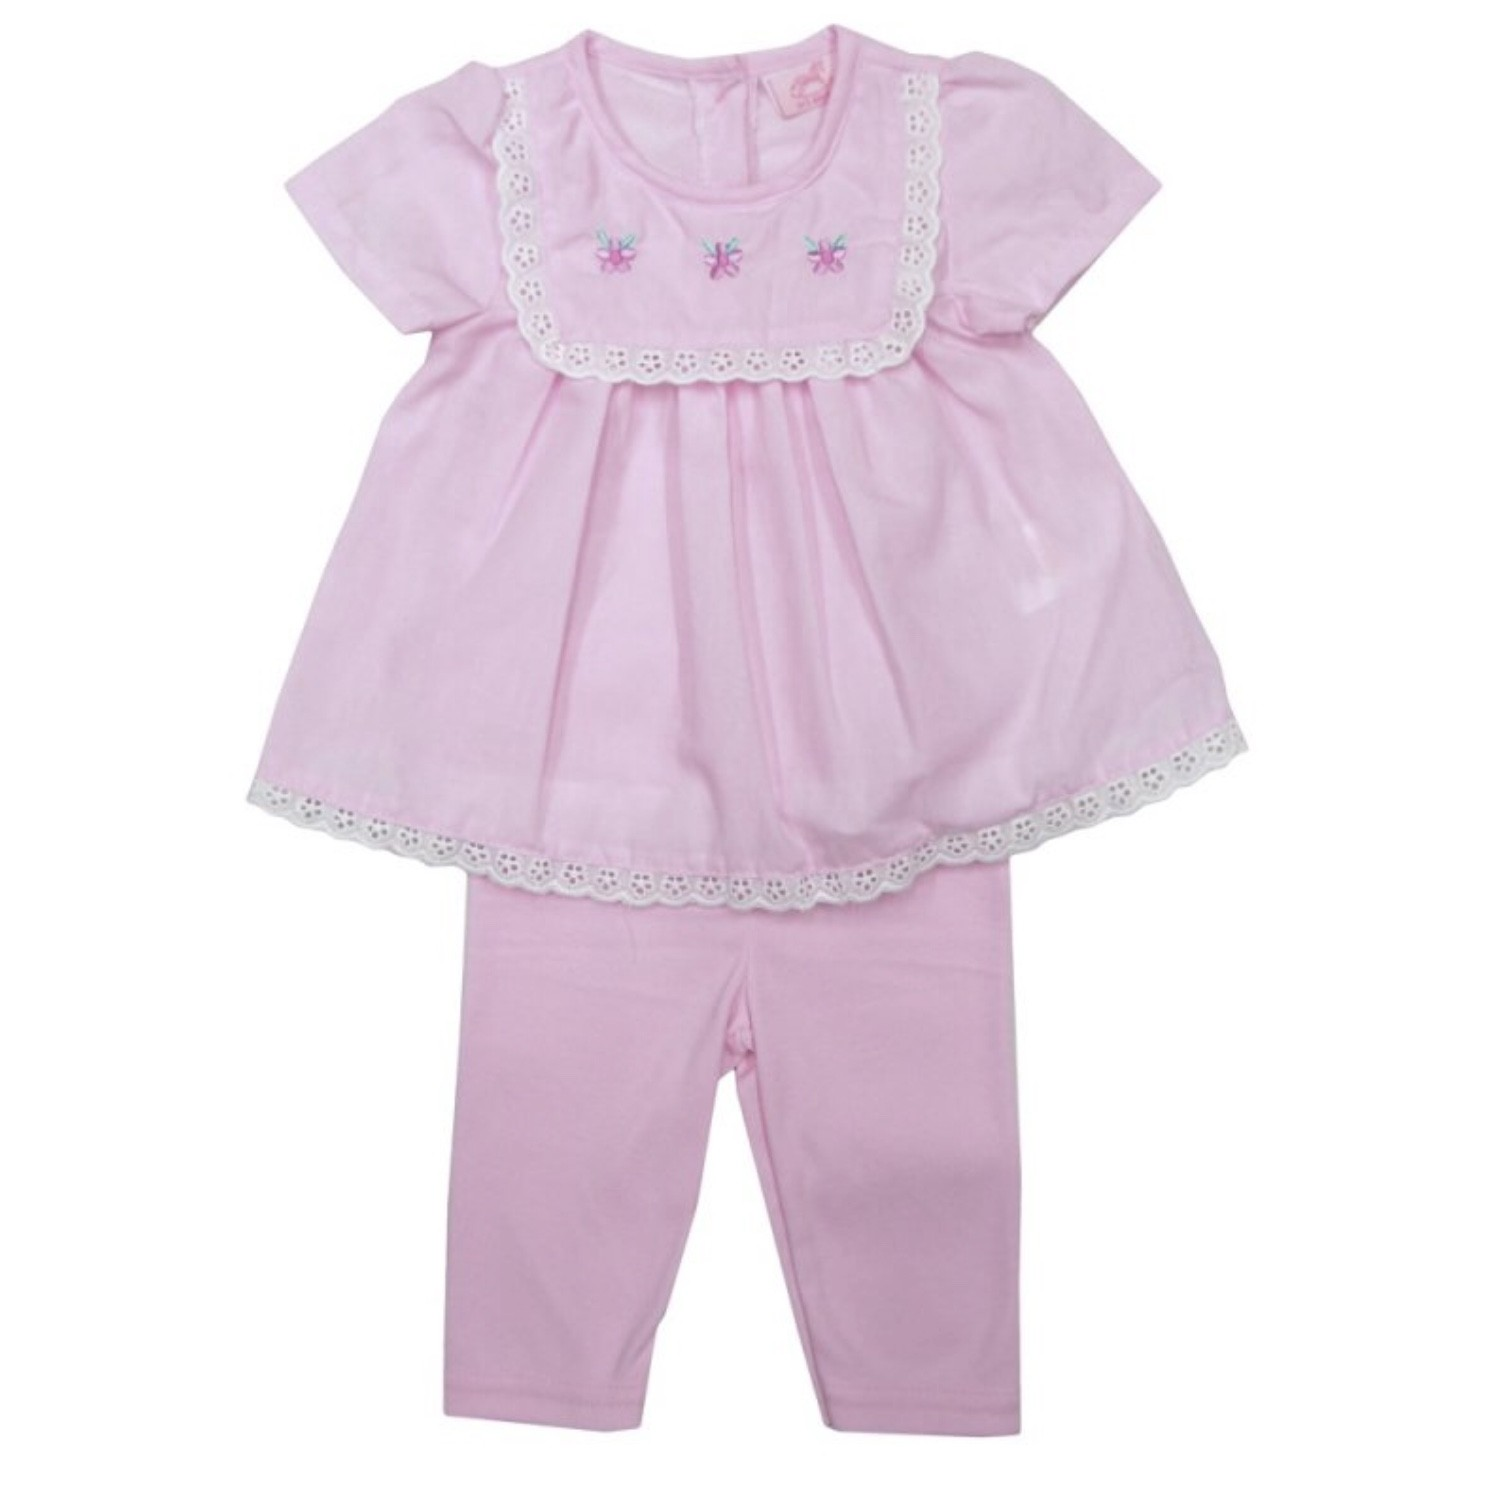 Rock a Bye Baby Baby Girls Pink Tunic Dress and Leggings Set PACK OF 6